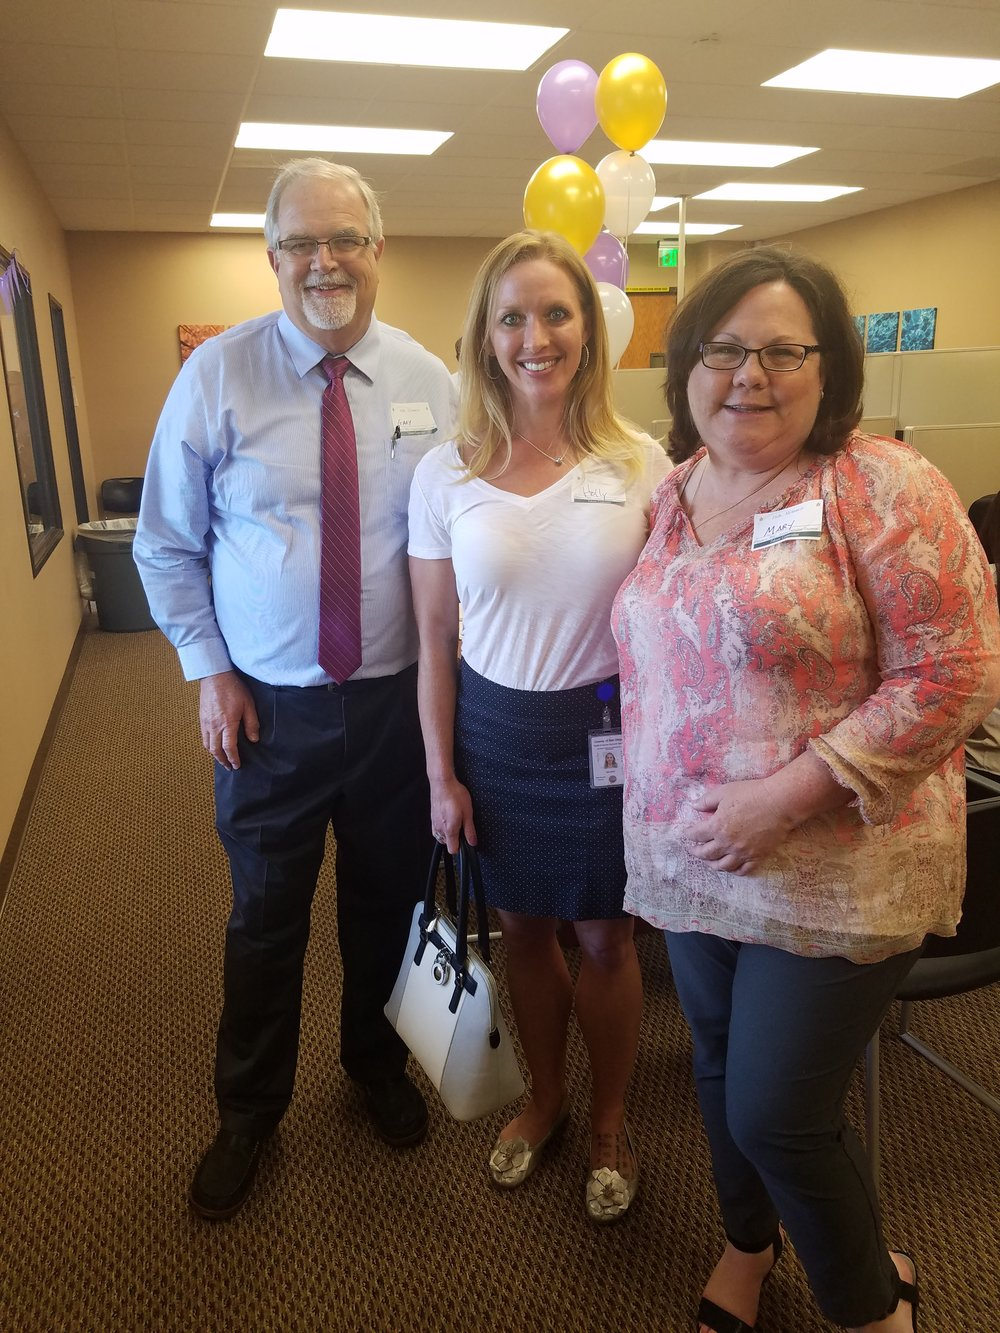 (L-R)  Gary Hubbard , Vice President of Operations of Southern California and Arizona;  Holly Salazar , Assistant Director, Departmental Operations Behavioral Health Services; and  Mary Woods , Regional Director San Diego County and Arizona